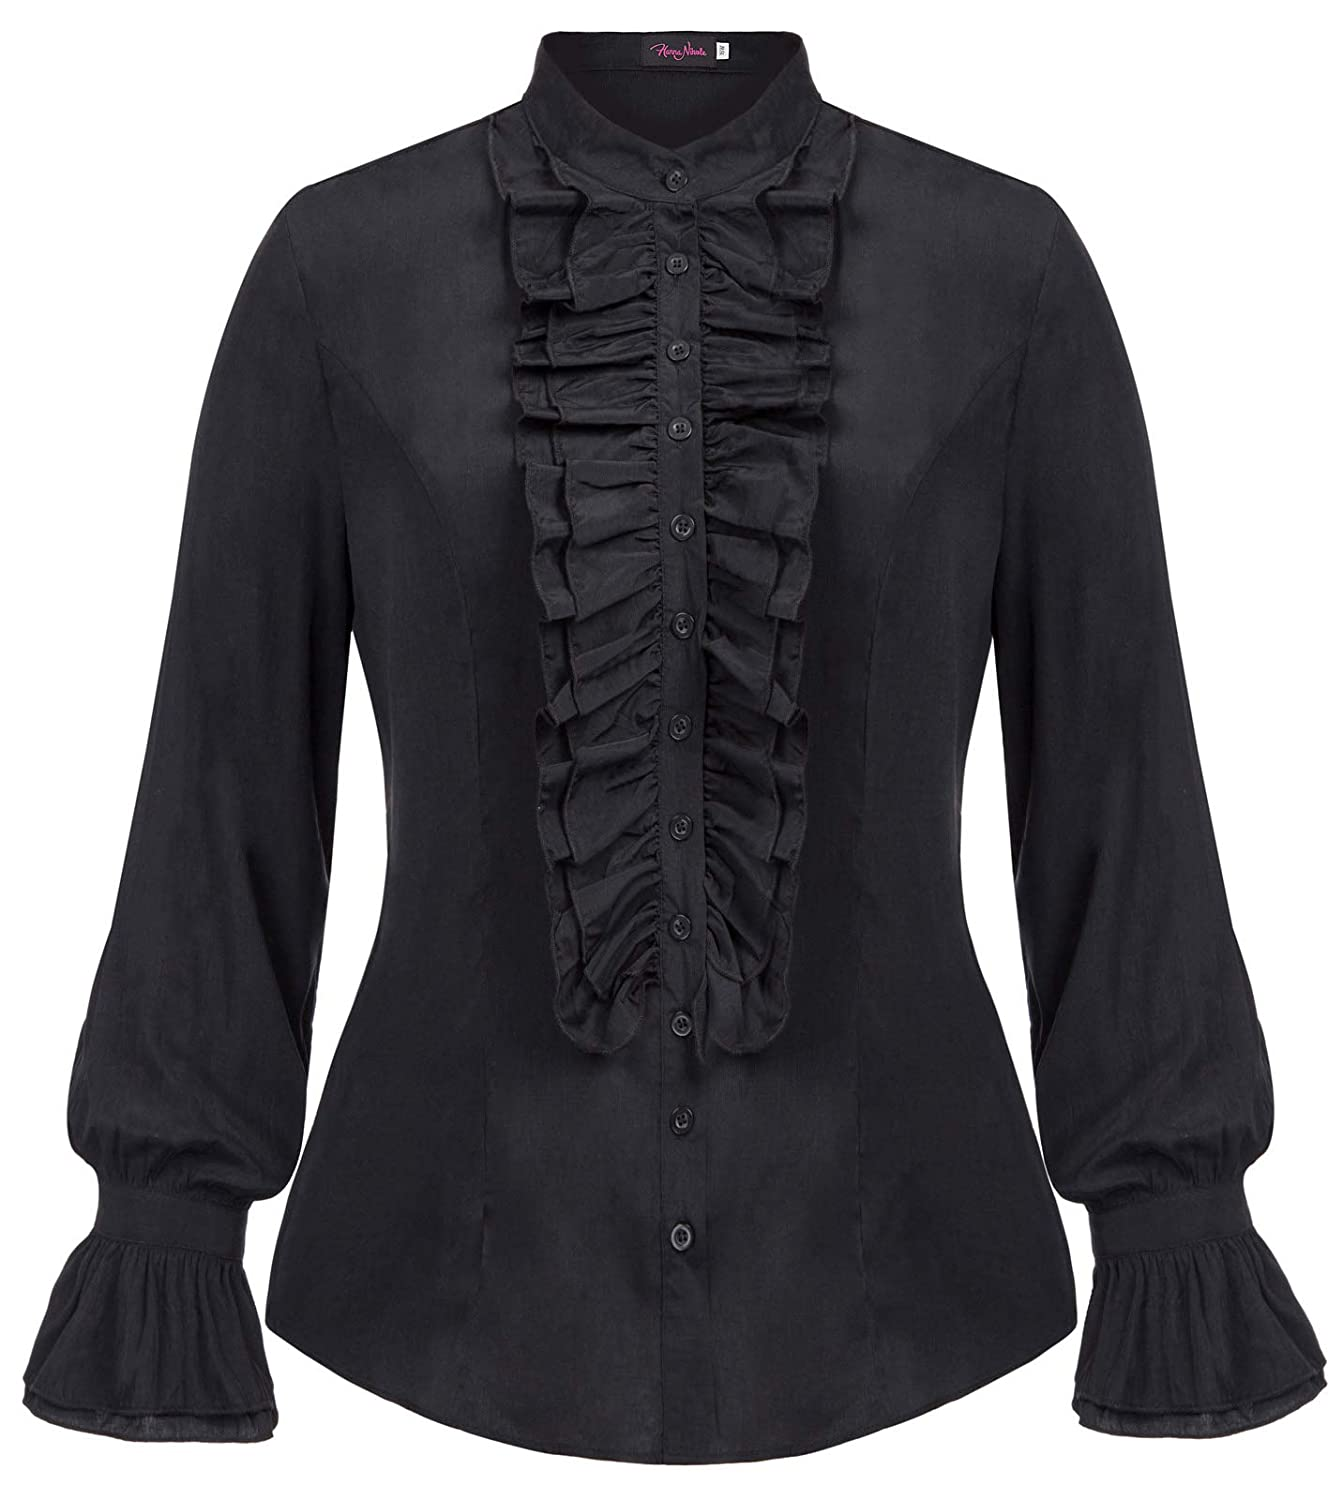 Steampunk Plus Size Clothing & Costumes Hanna Nikole Women Plus Size Victorian Gothic Ruffled Lotus Shirt Blouse Tops $23.99 AT vintagedancer.com